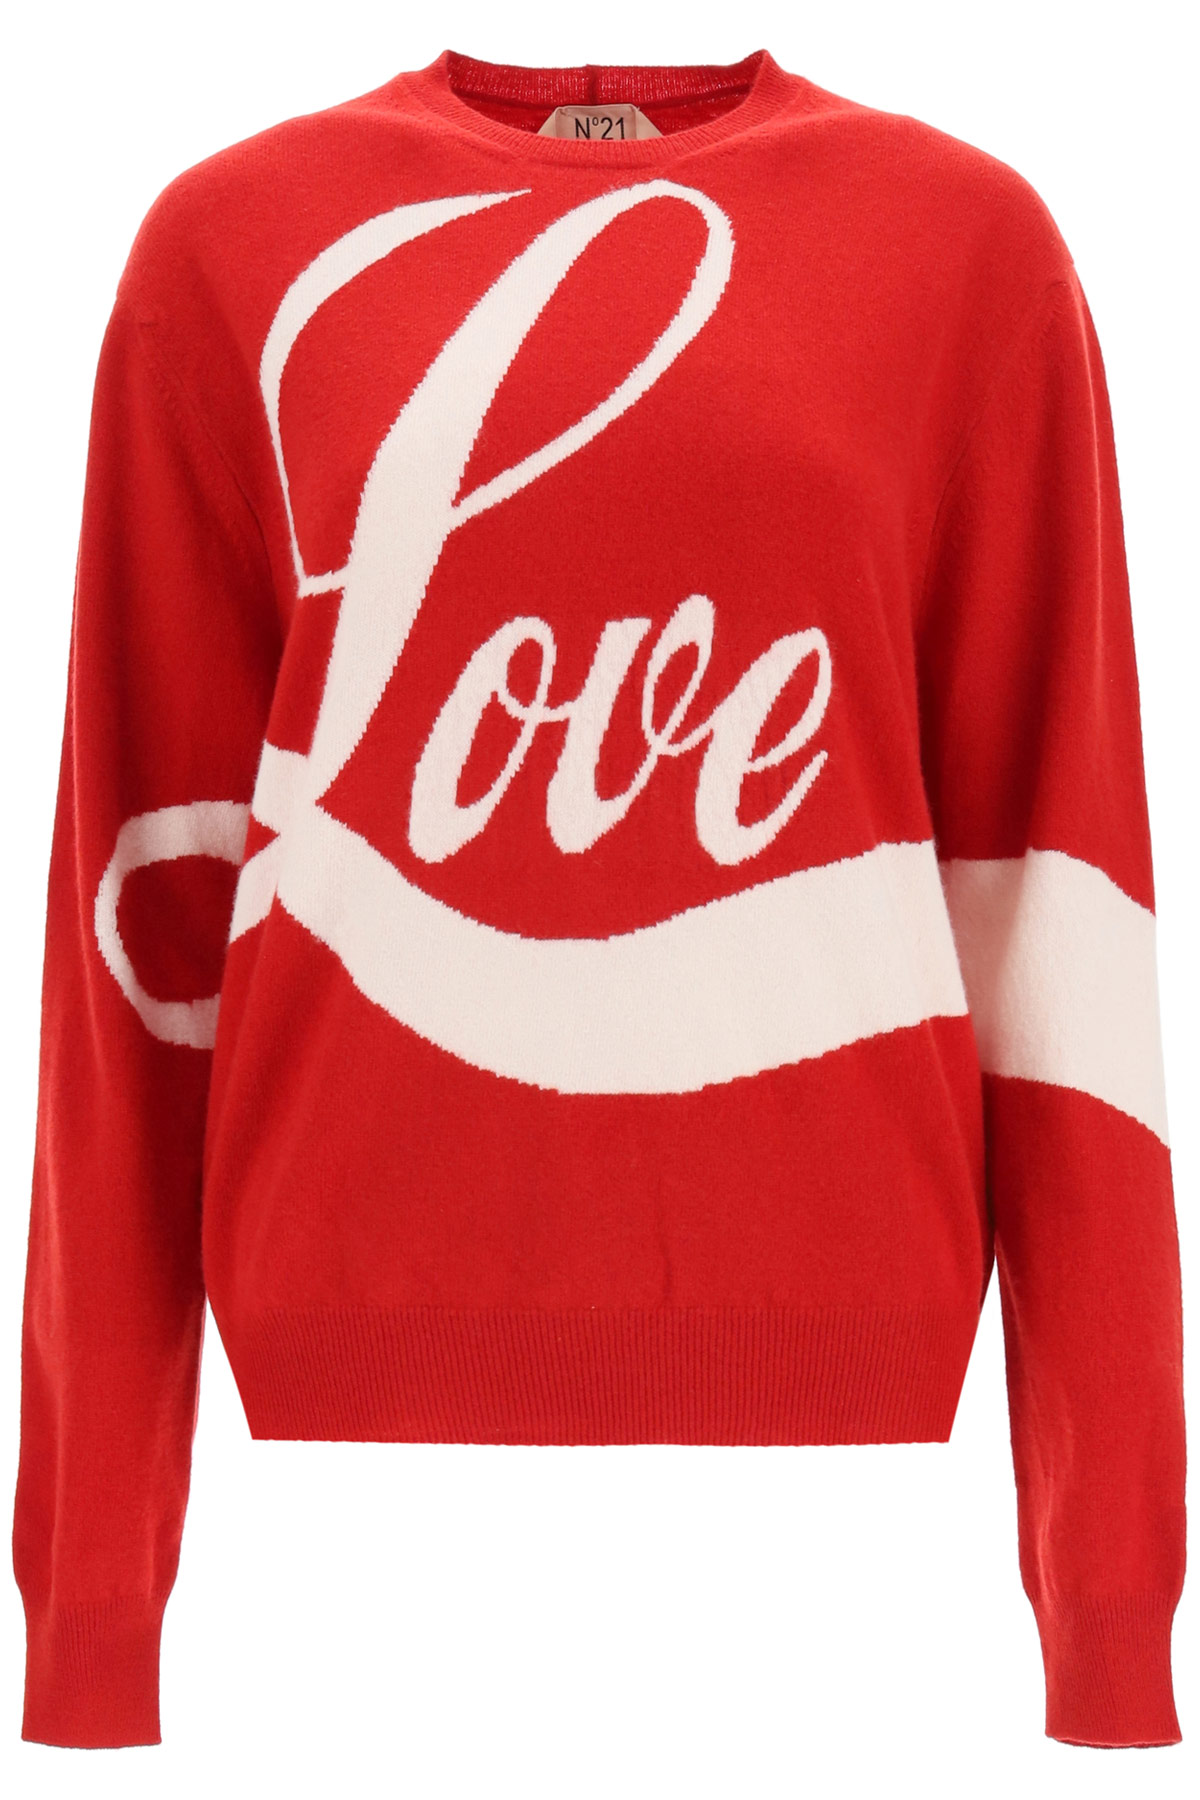 N.21 SWEATER WITH LOVE INTARSIA 42 Red, White Wool